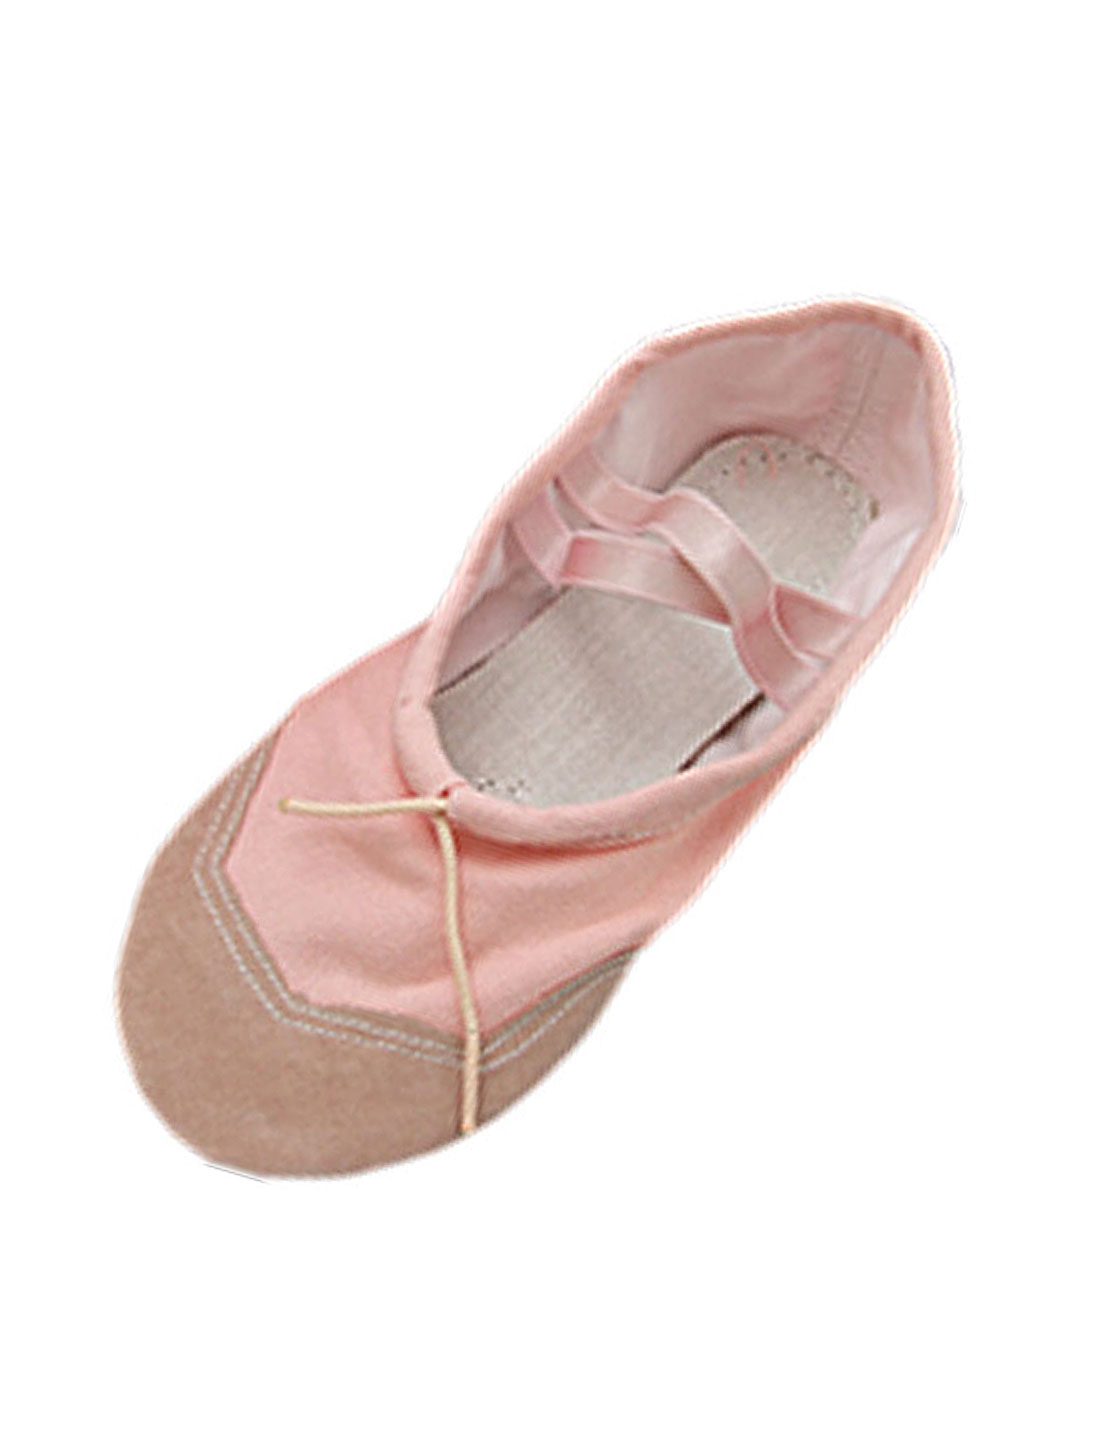 Pink Soft Dancing Dance Ballet Ladies' Shoes Size 10